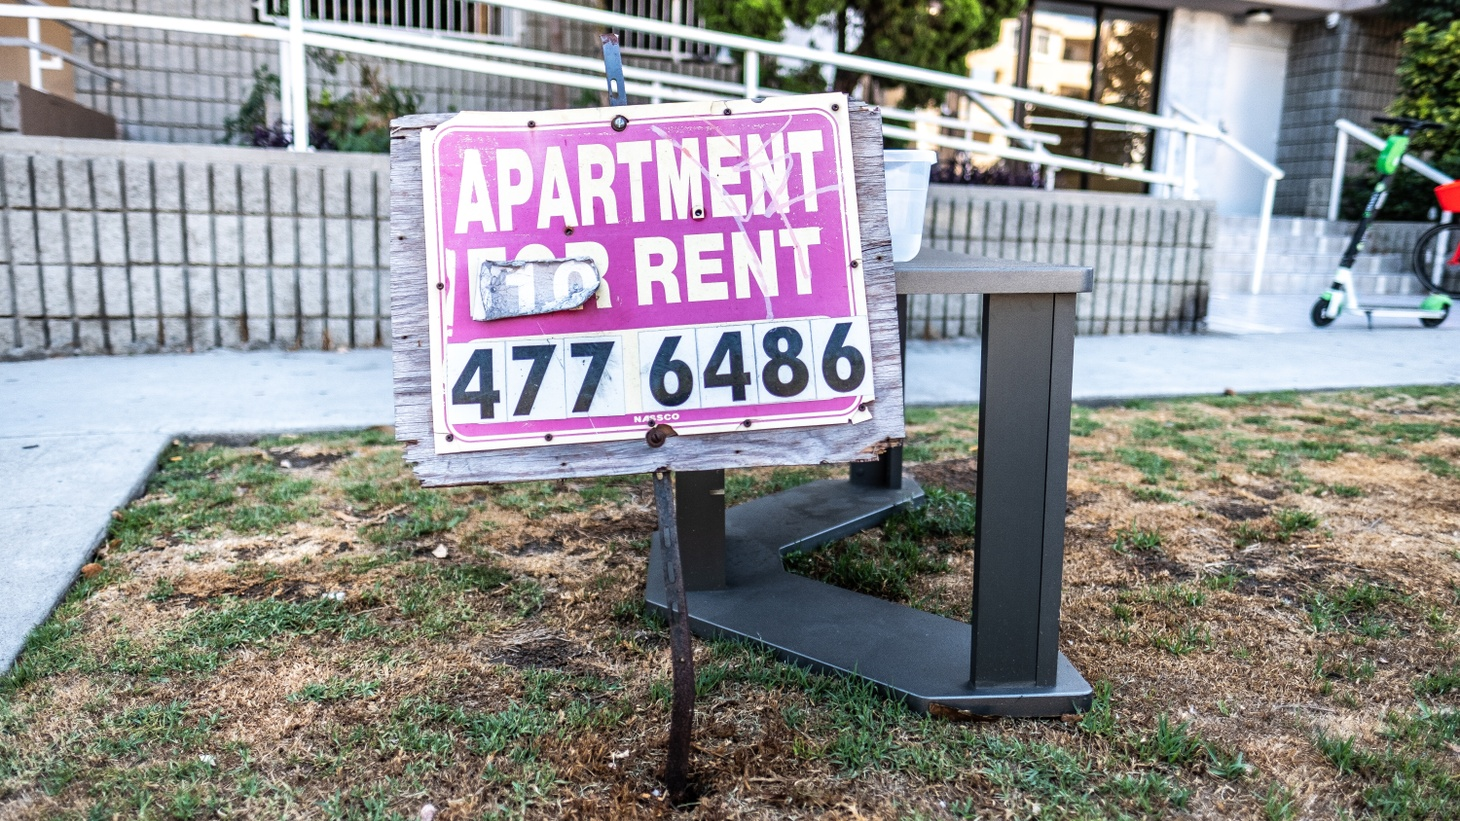 Apartment for rent sign in Santa Monica.